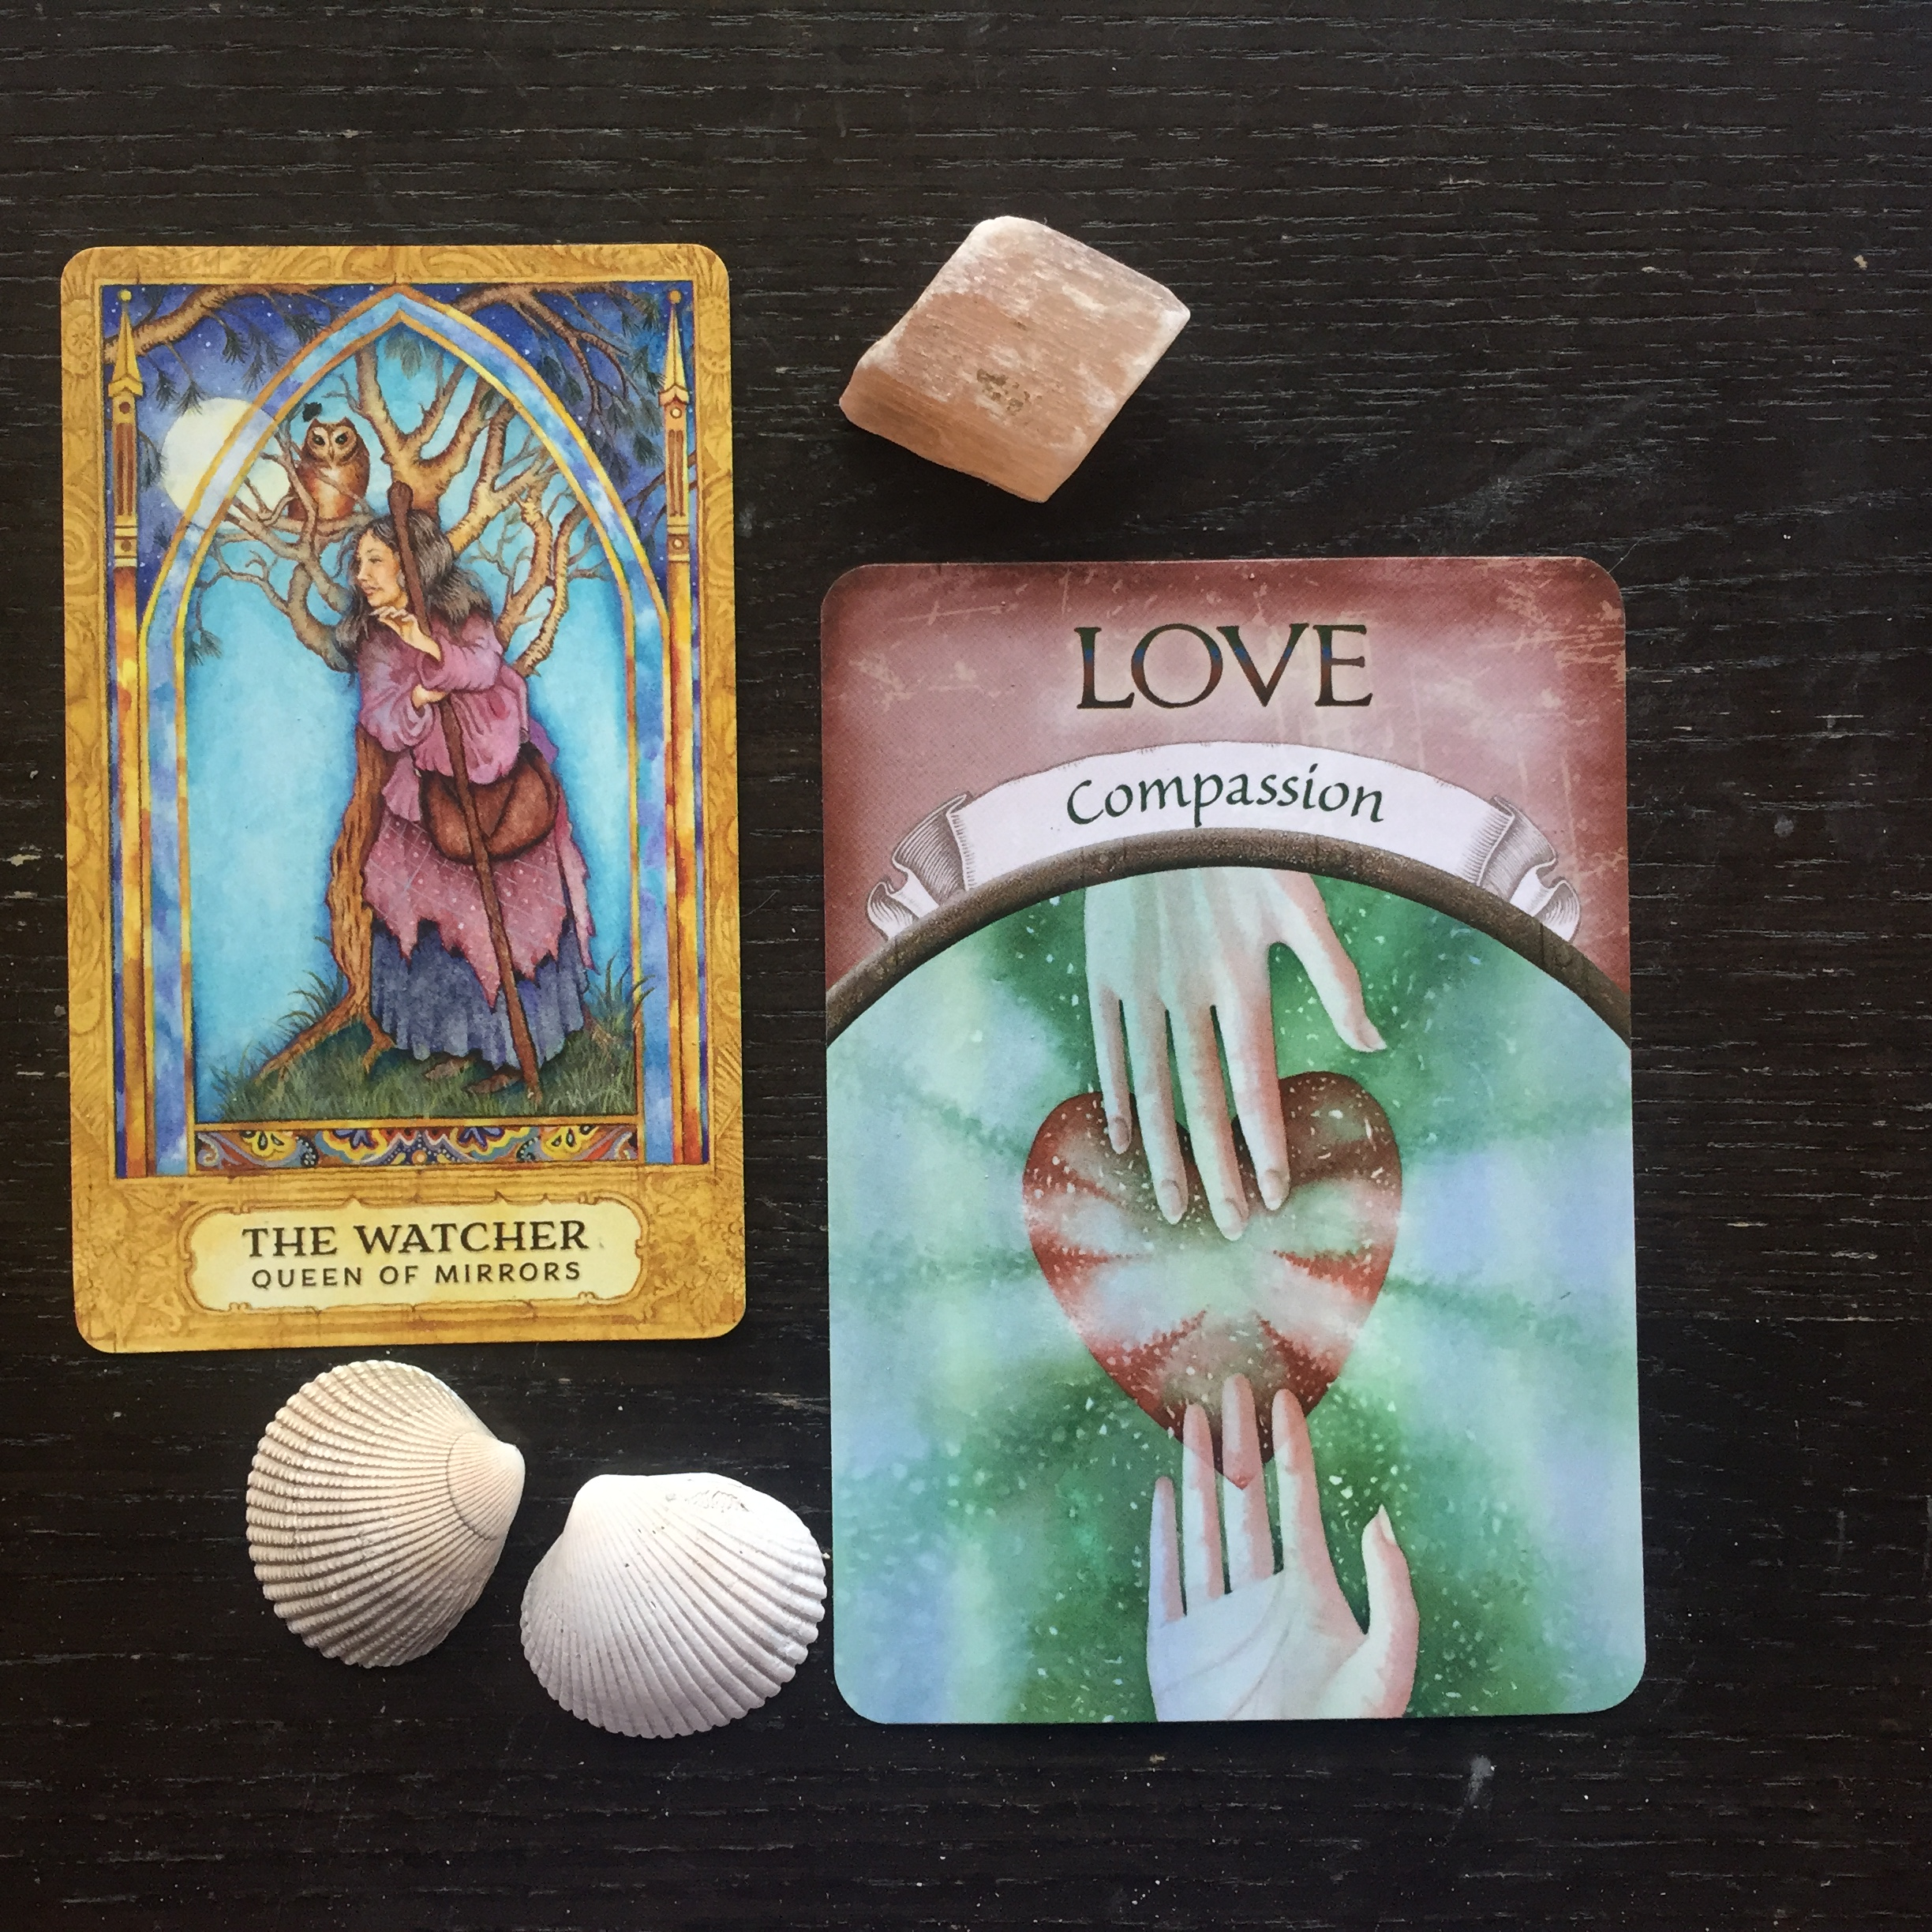 The Watcher from The Chrysalis Tarot and Love from Earth Magic Oracle